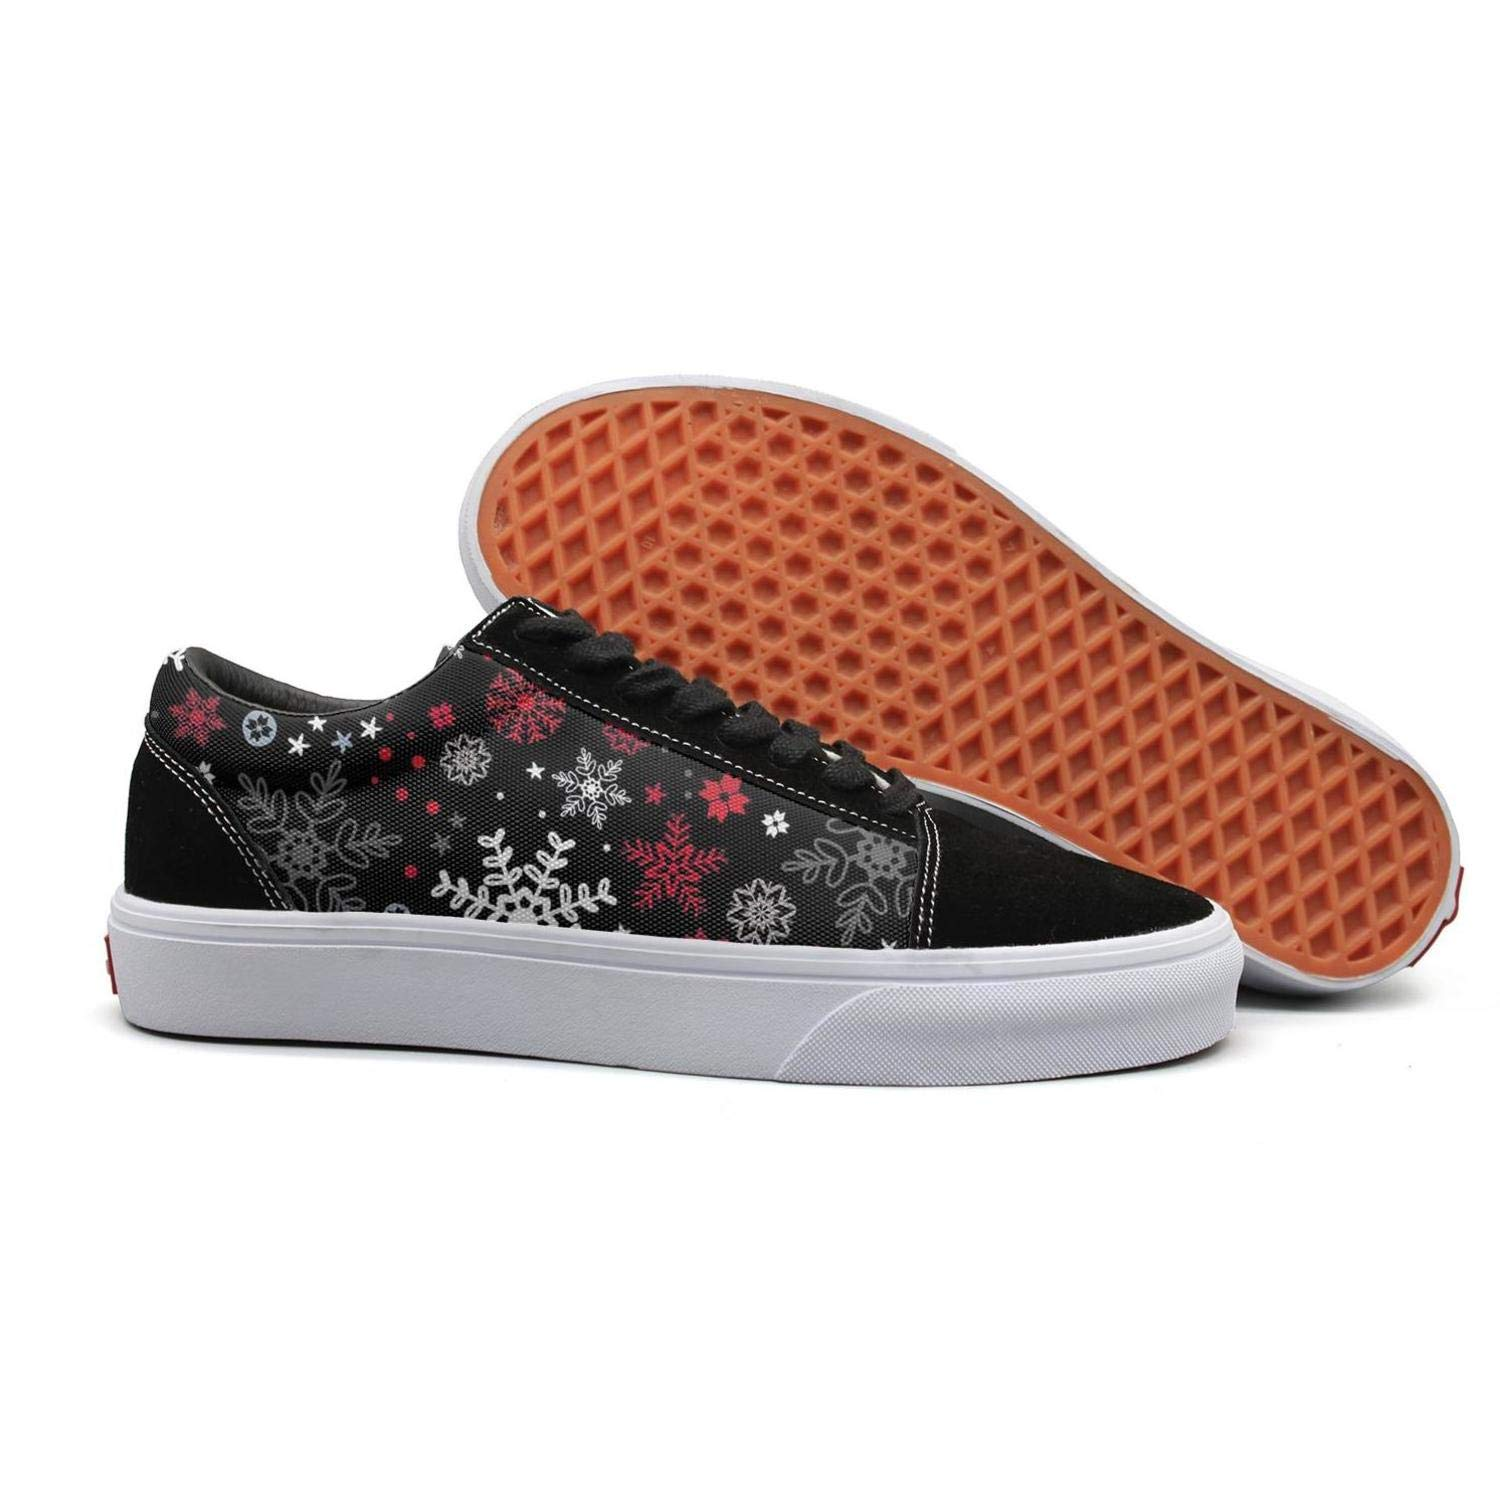 Pheomg Womens Ladies Christmas Black Snowflakes Low Top Casual Slip-on Canvas Shoes Classic Casual Shoes Sneakers